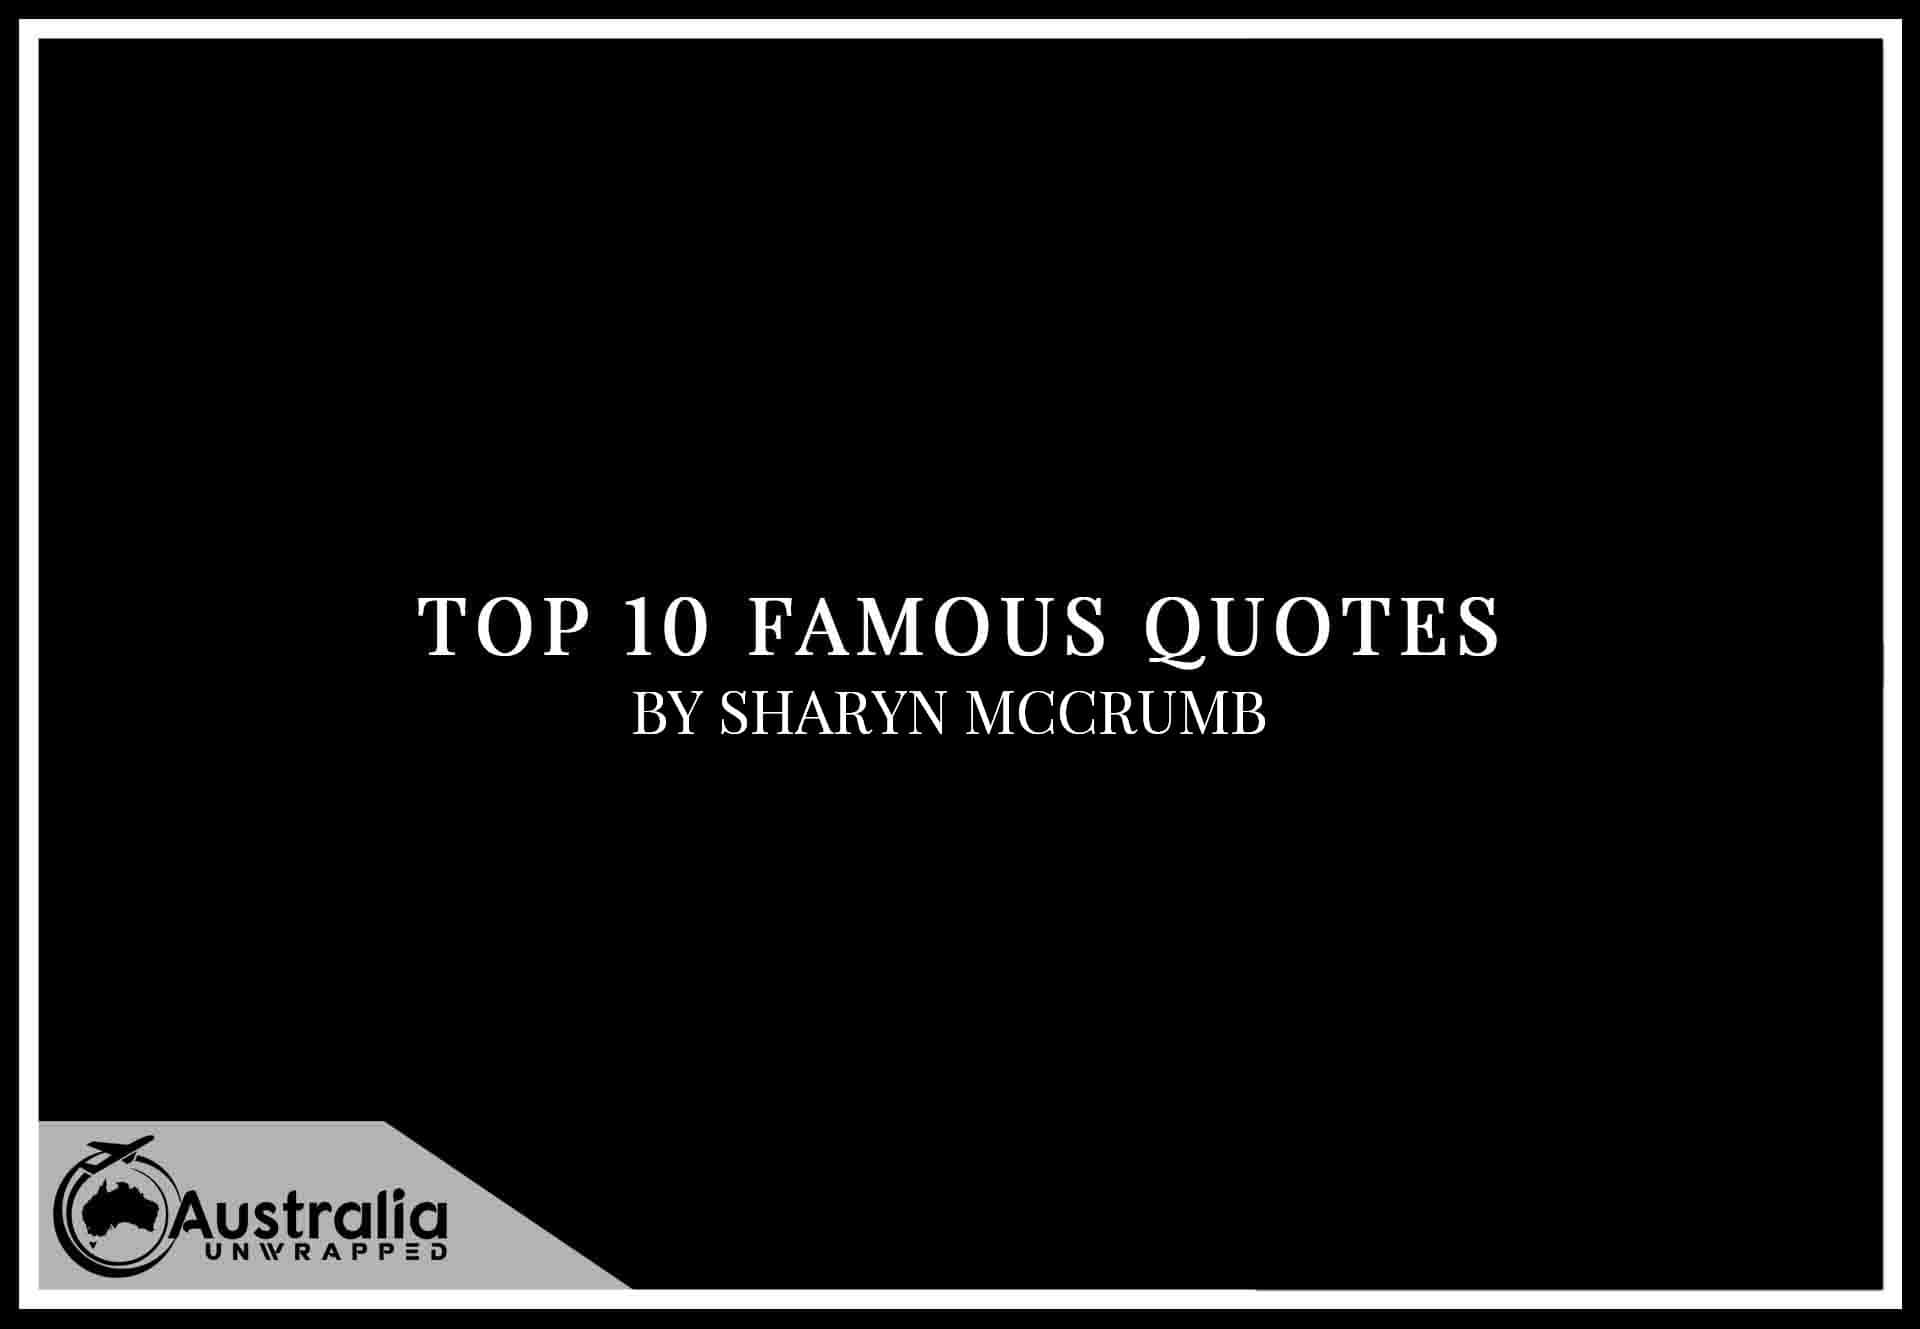 Top 10 Famous Quotes by Author Sharyn McCrumb